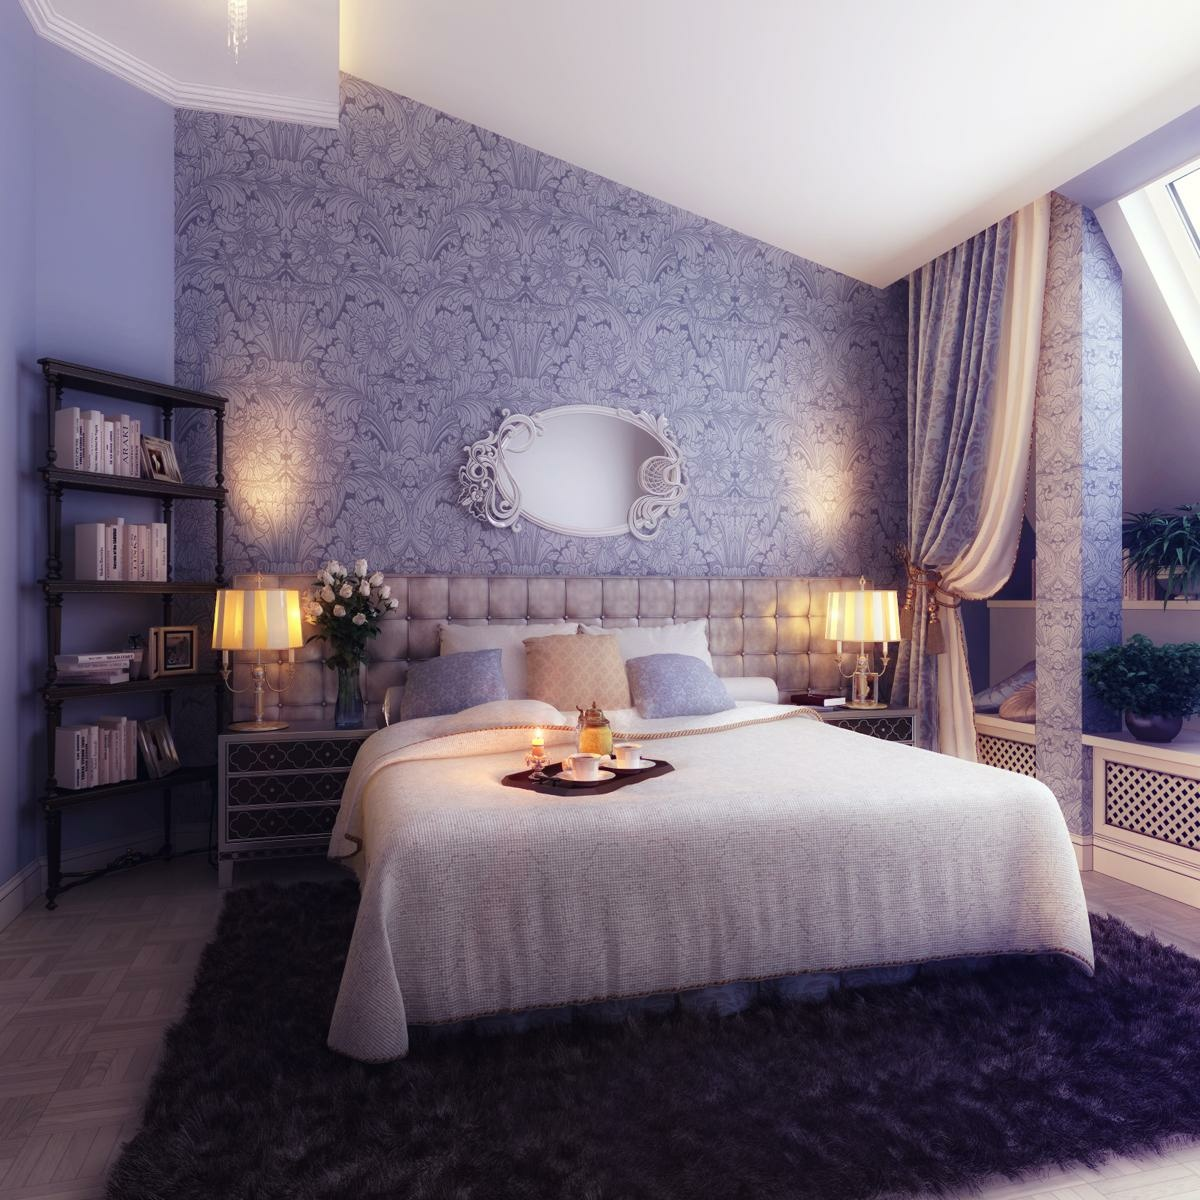 Bedroom Decorating Ideas: Bedrooms With Traditional Elegance